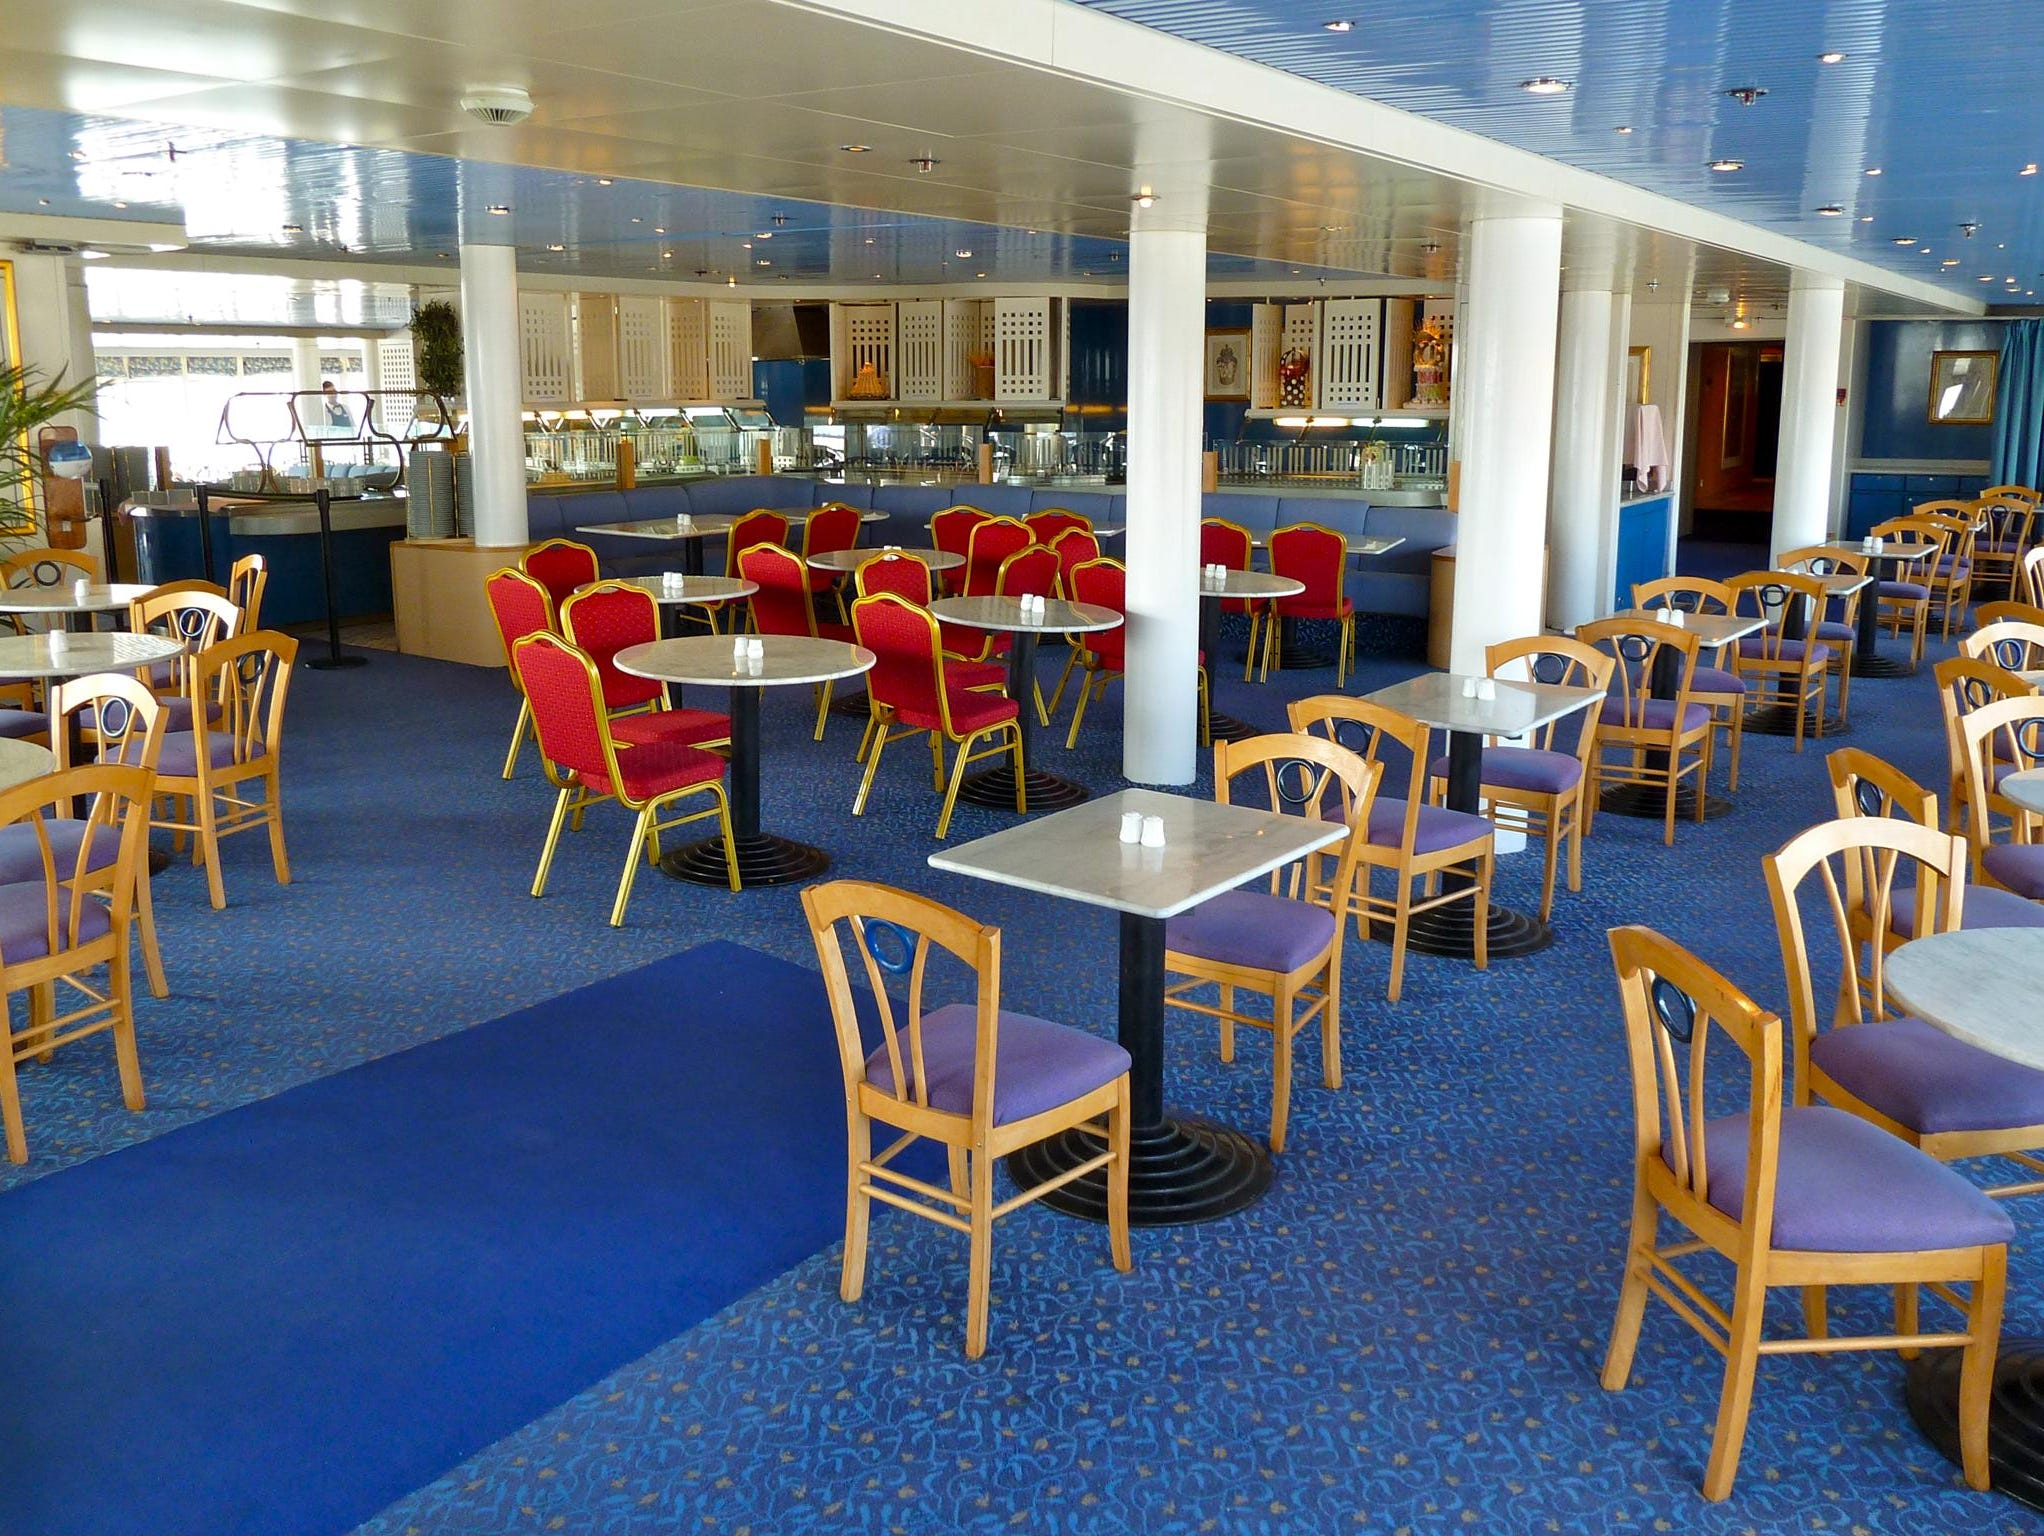 Used for breakfast, lunch, tea and casual themed dinners, Marcos Restaurant is a 370-seat buffet-style dining venue on aft Magellan Deck.